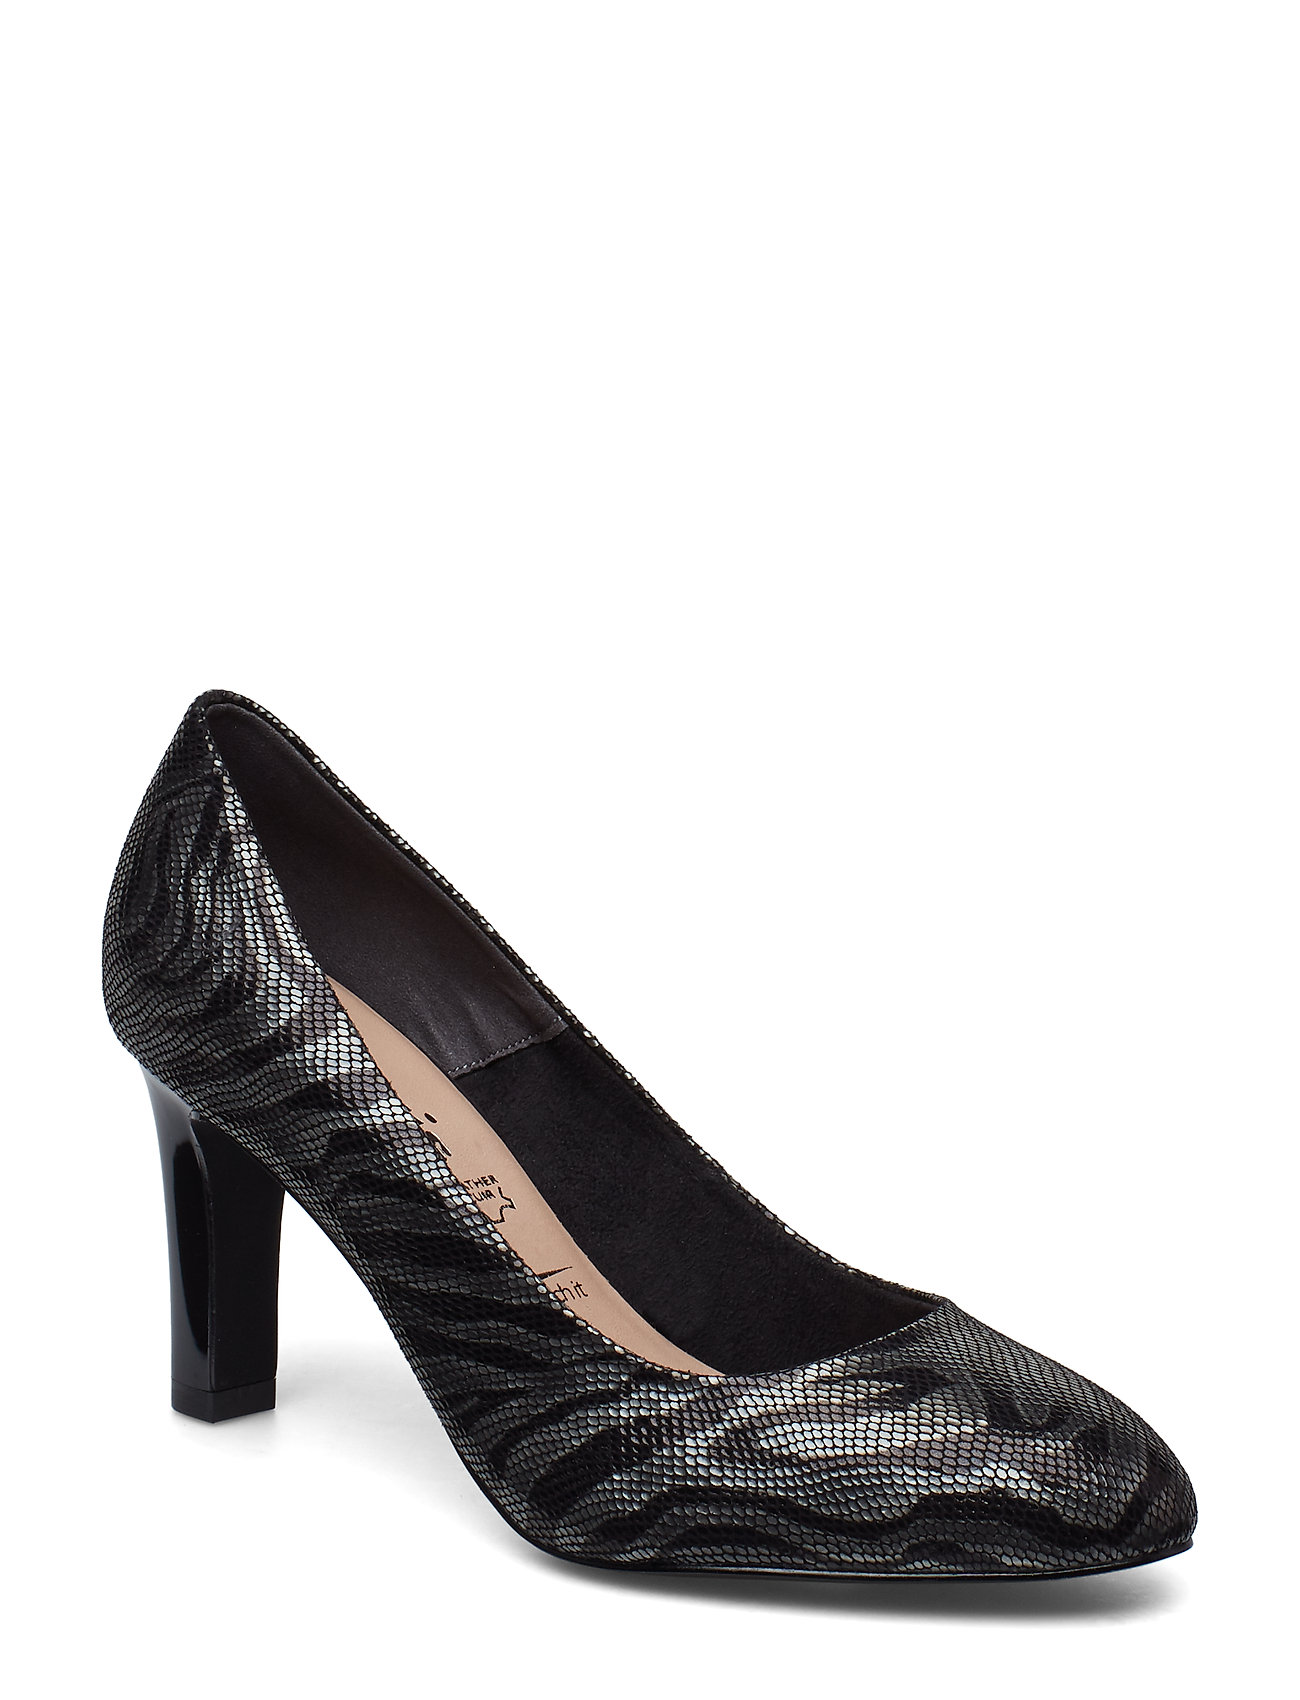 Tamaris Woms Court Shoe - BLACK STRUCT.